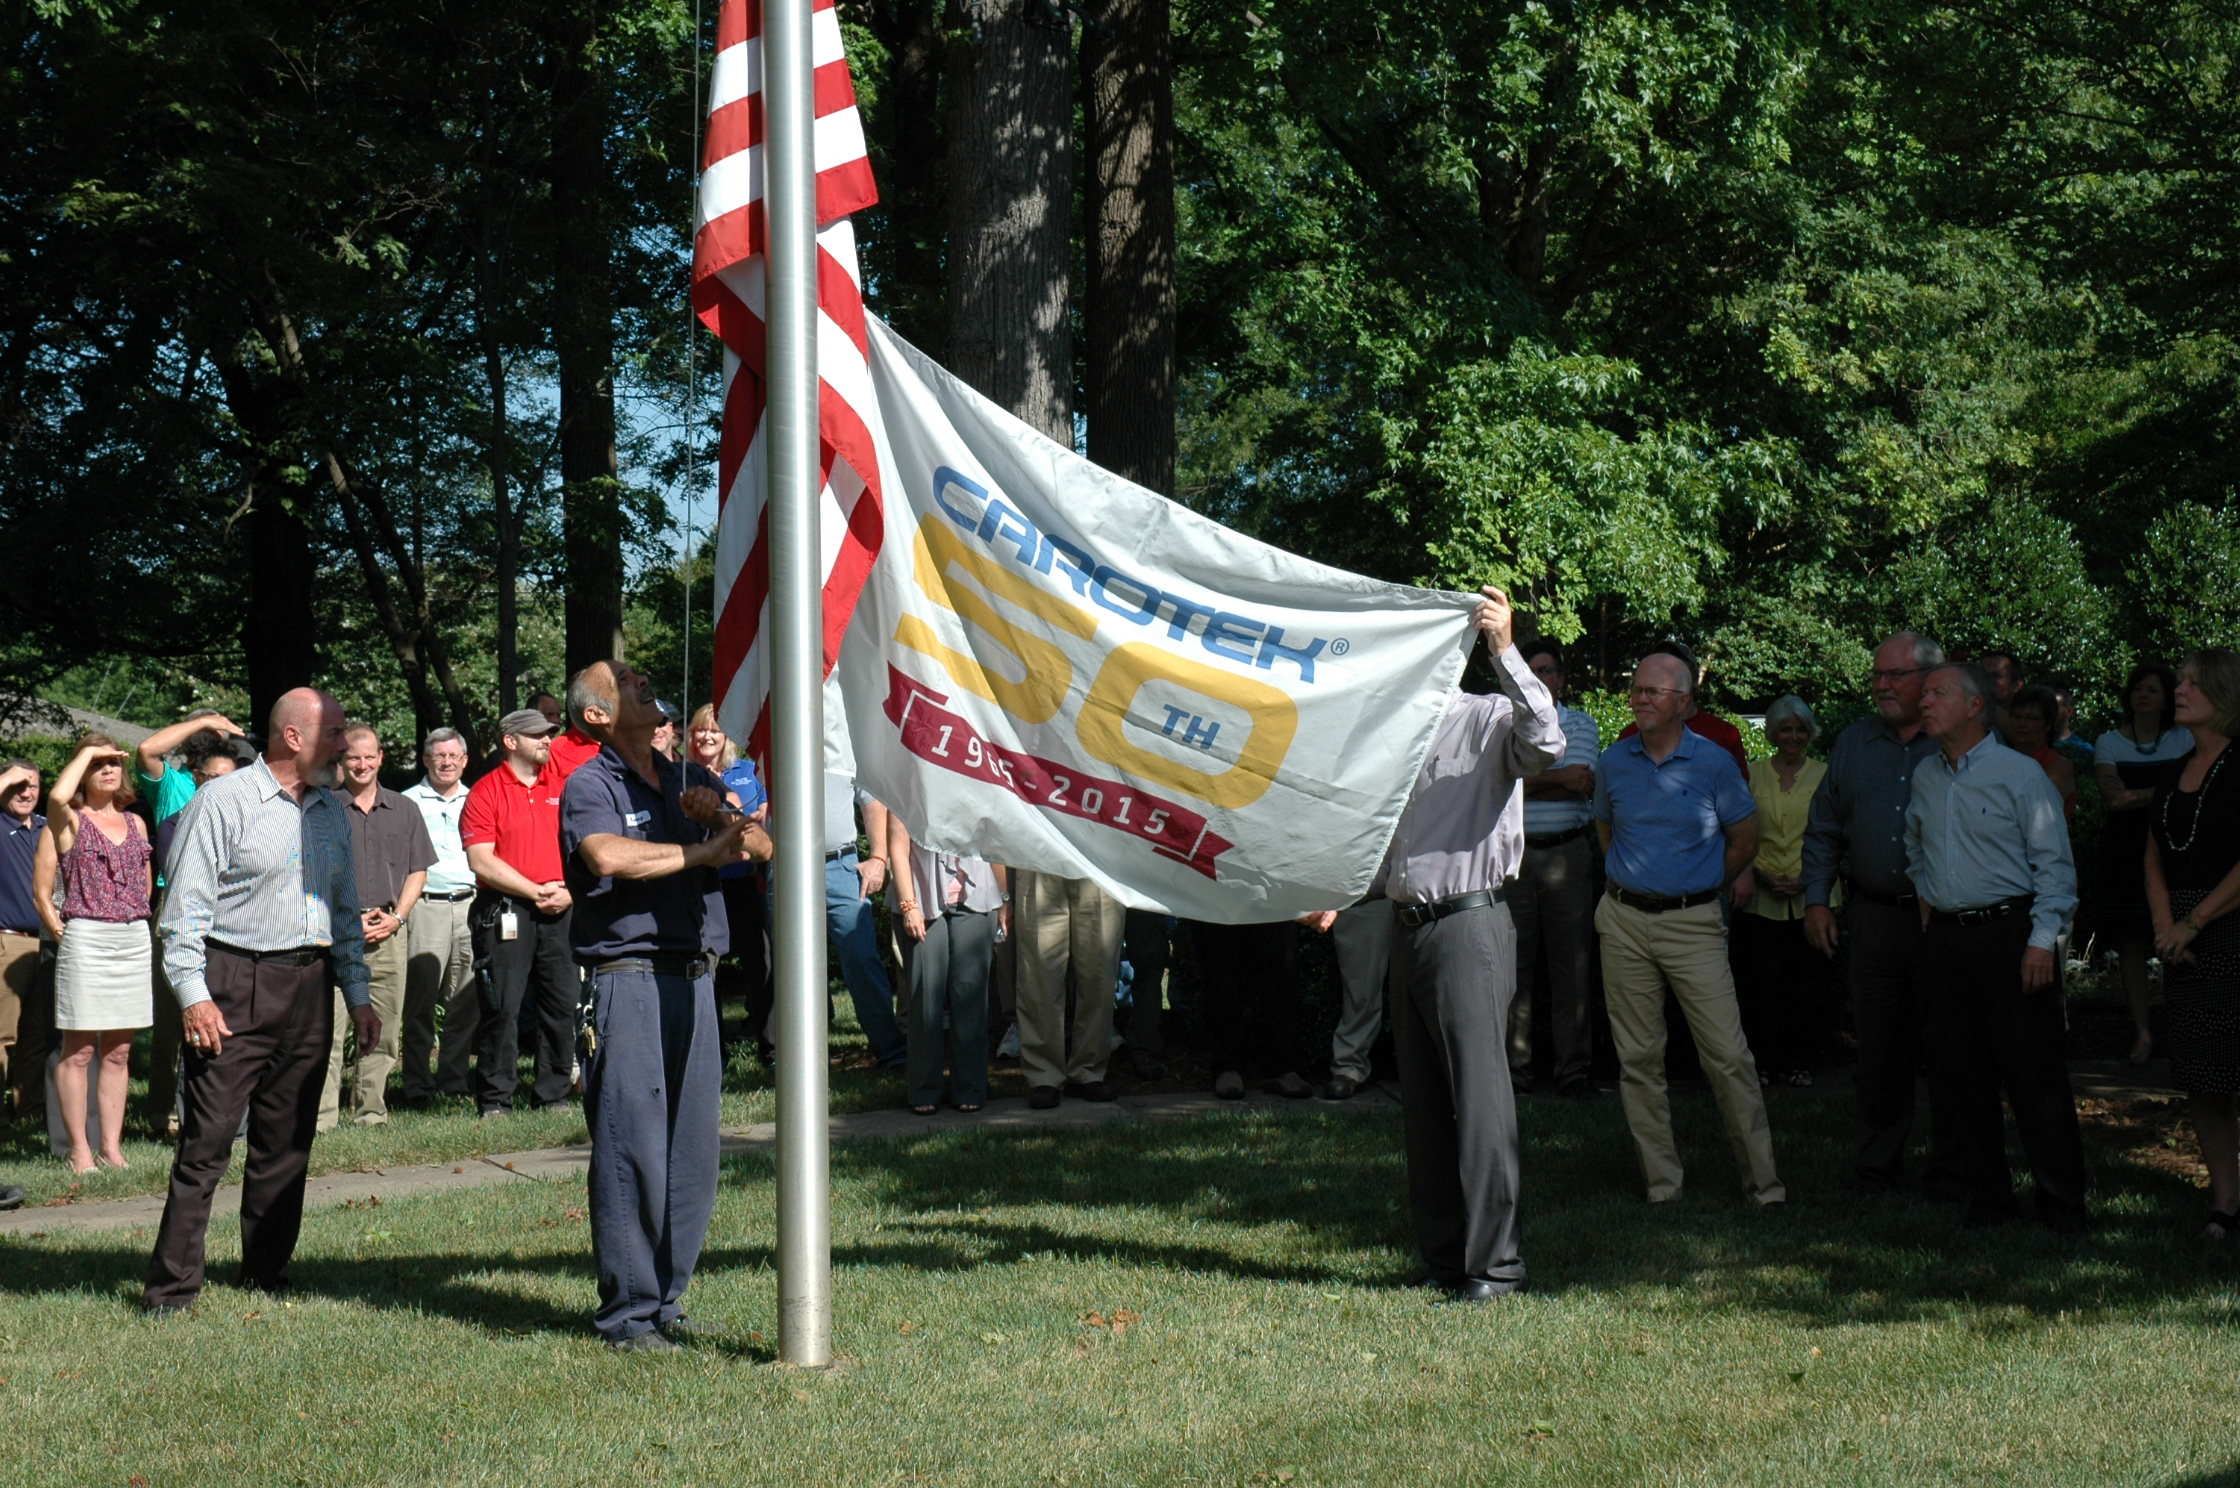 50th flag showing